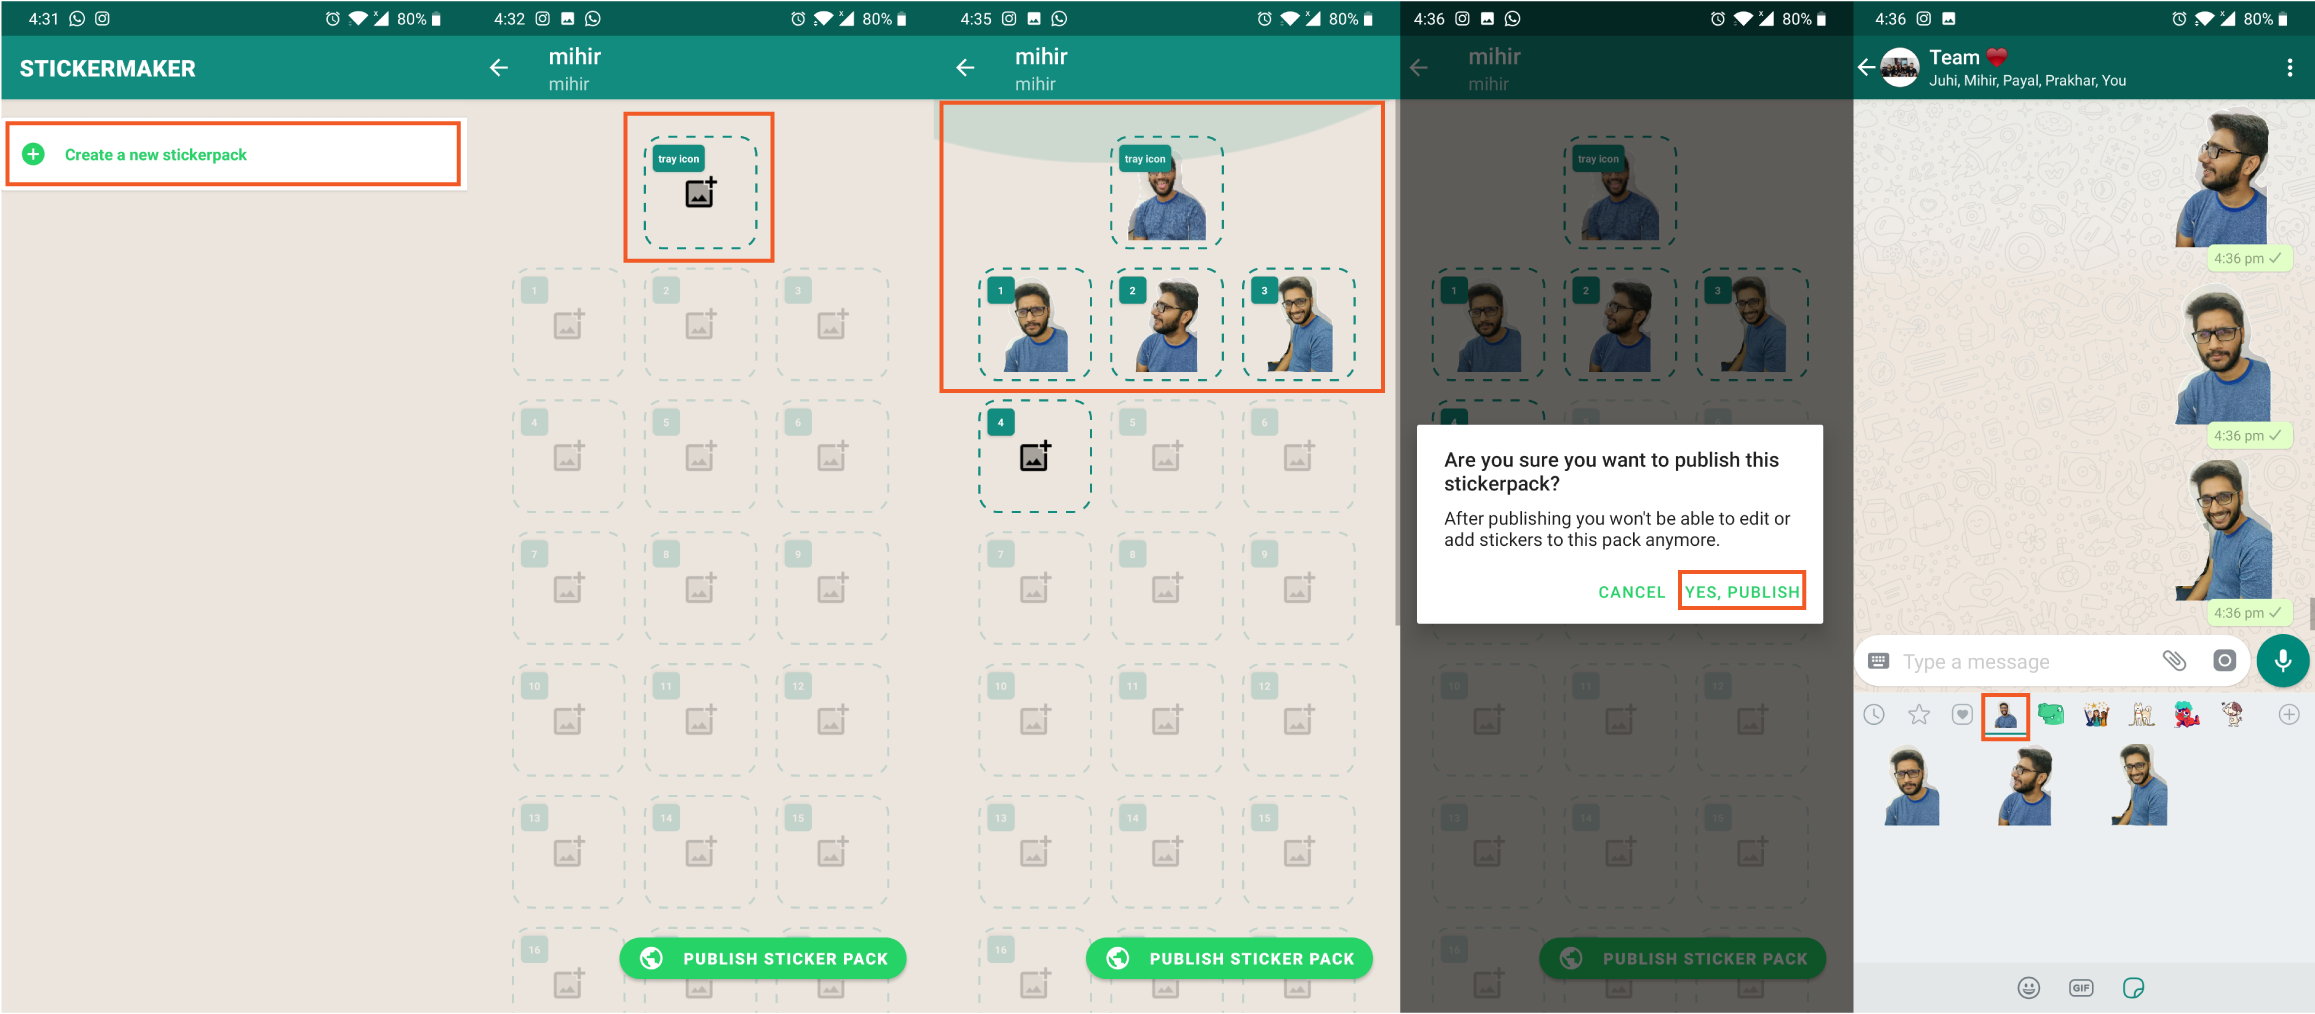 How To Make Custom WhatsApp Stickers On Android